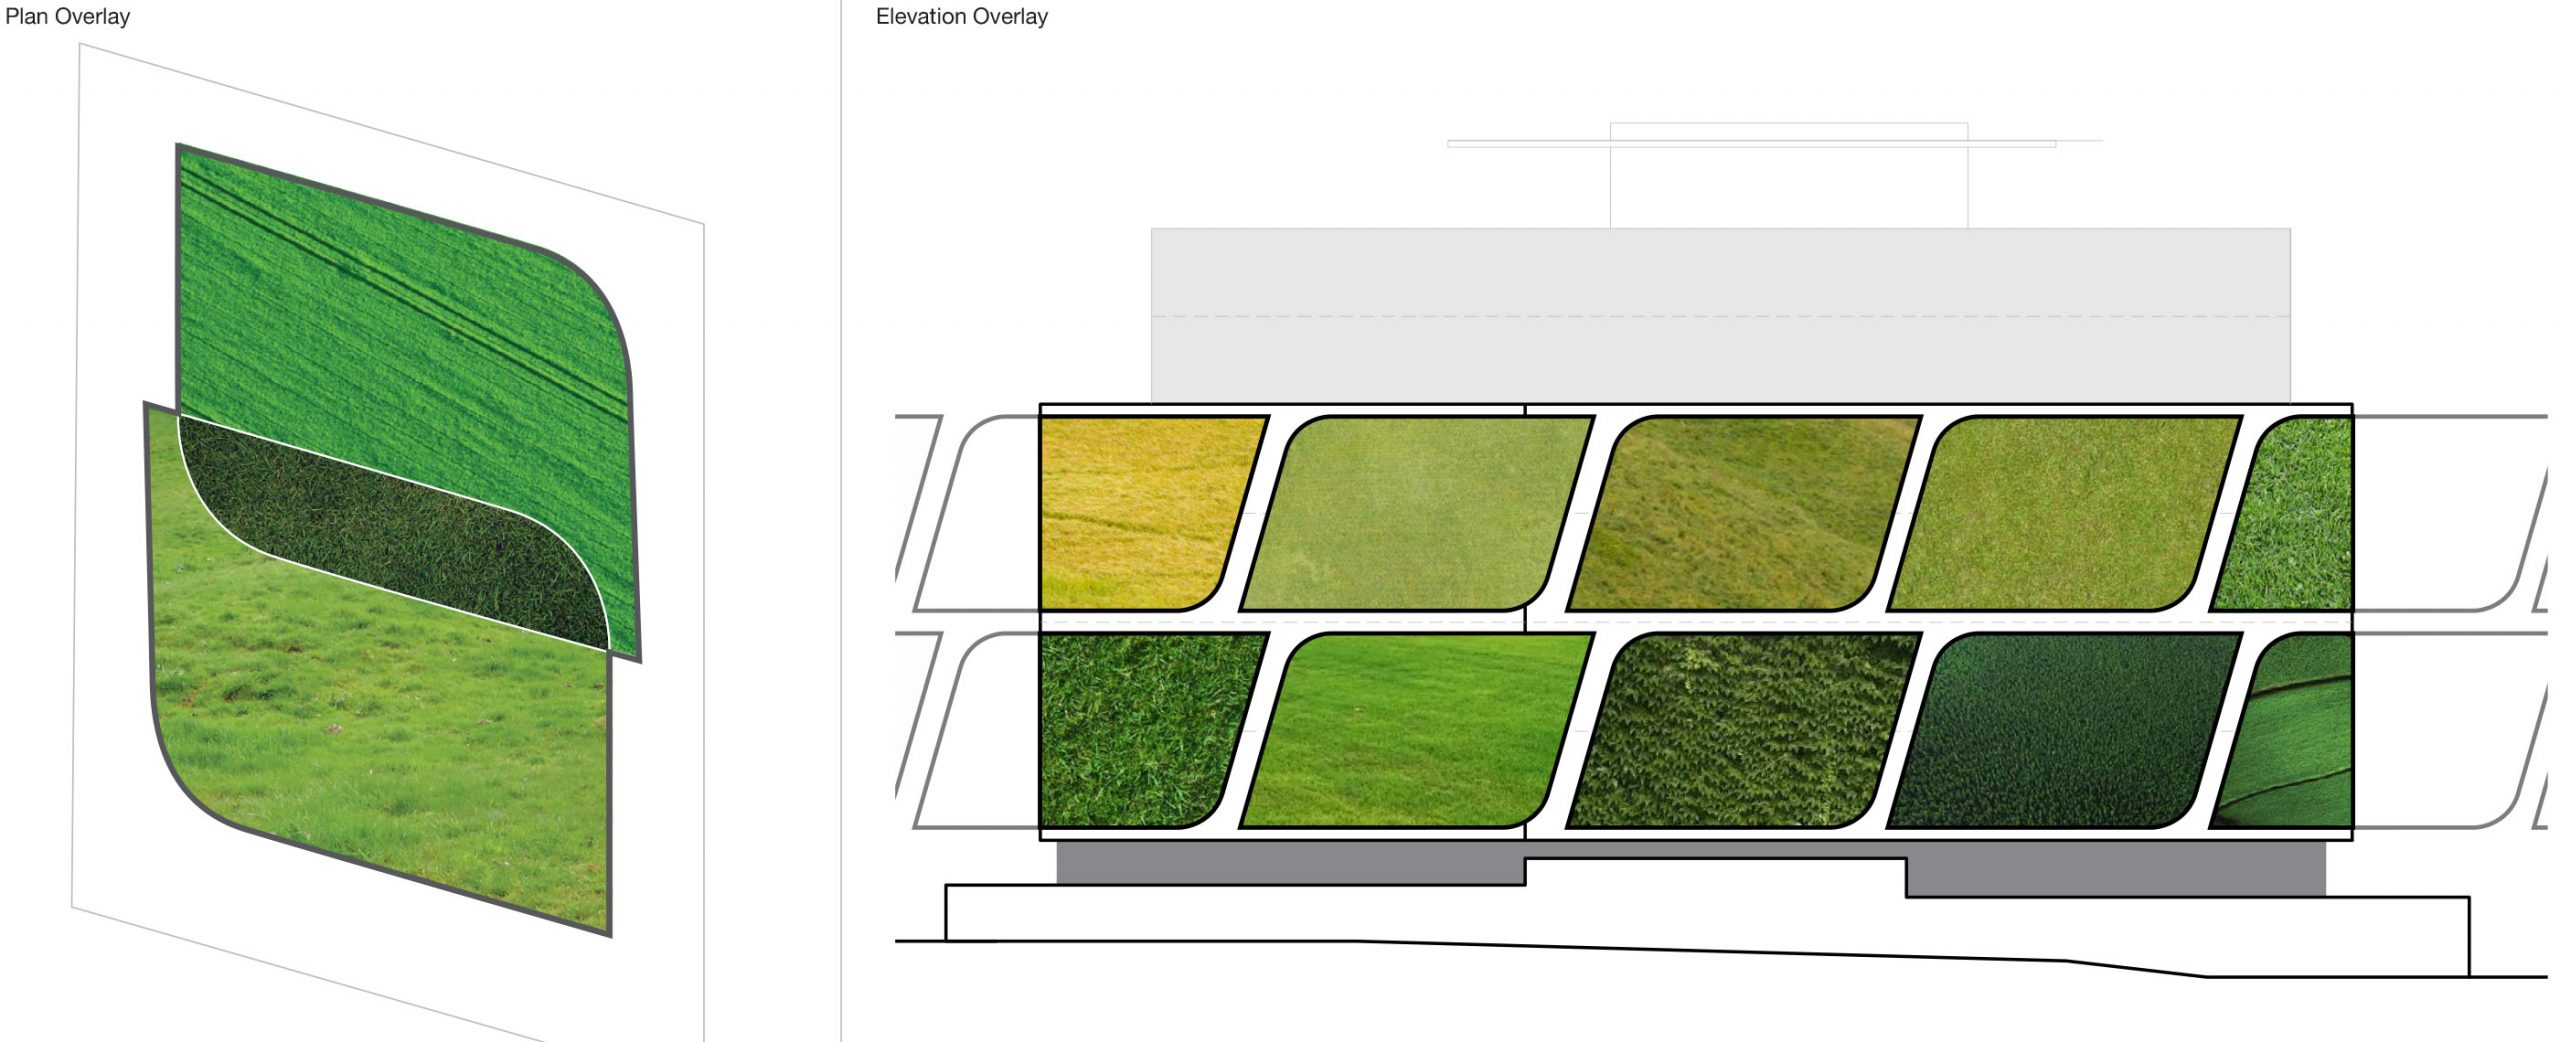 Anthology Rothelowman Architecture project